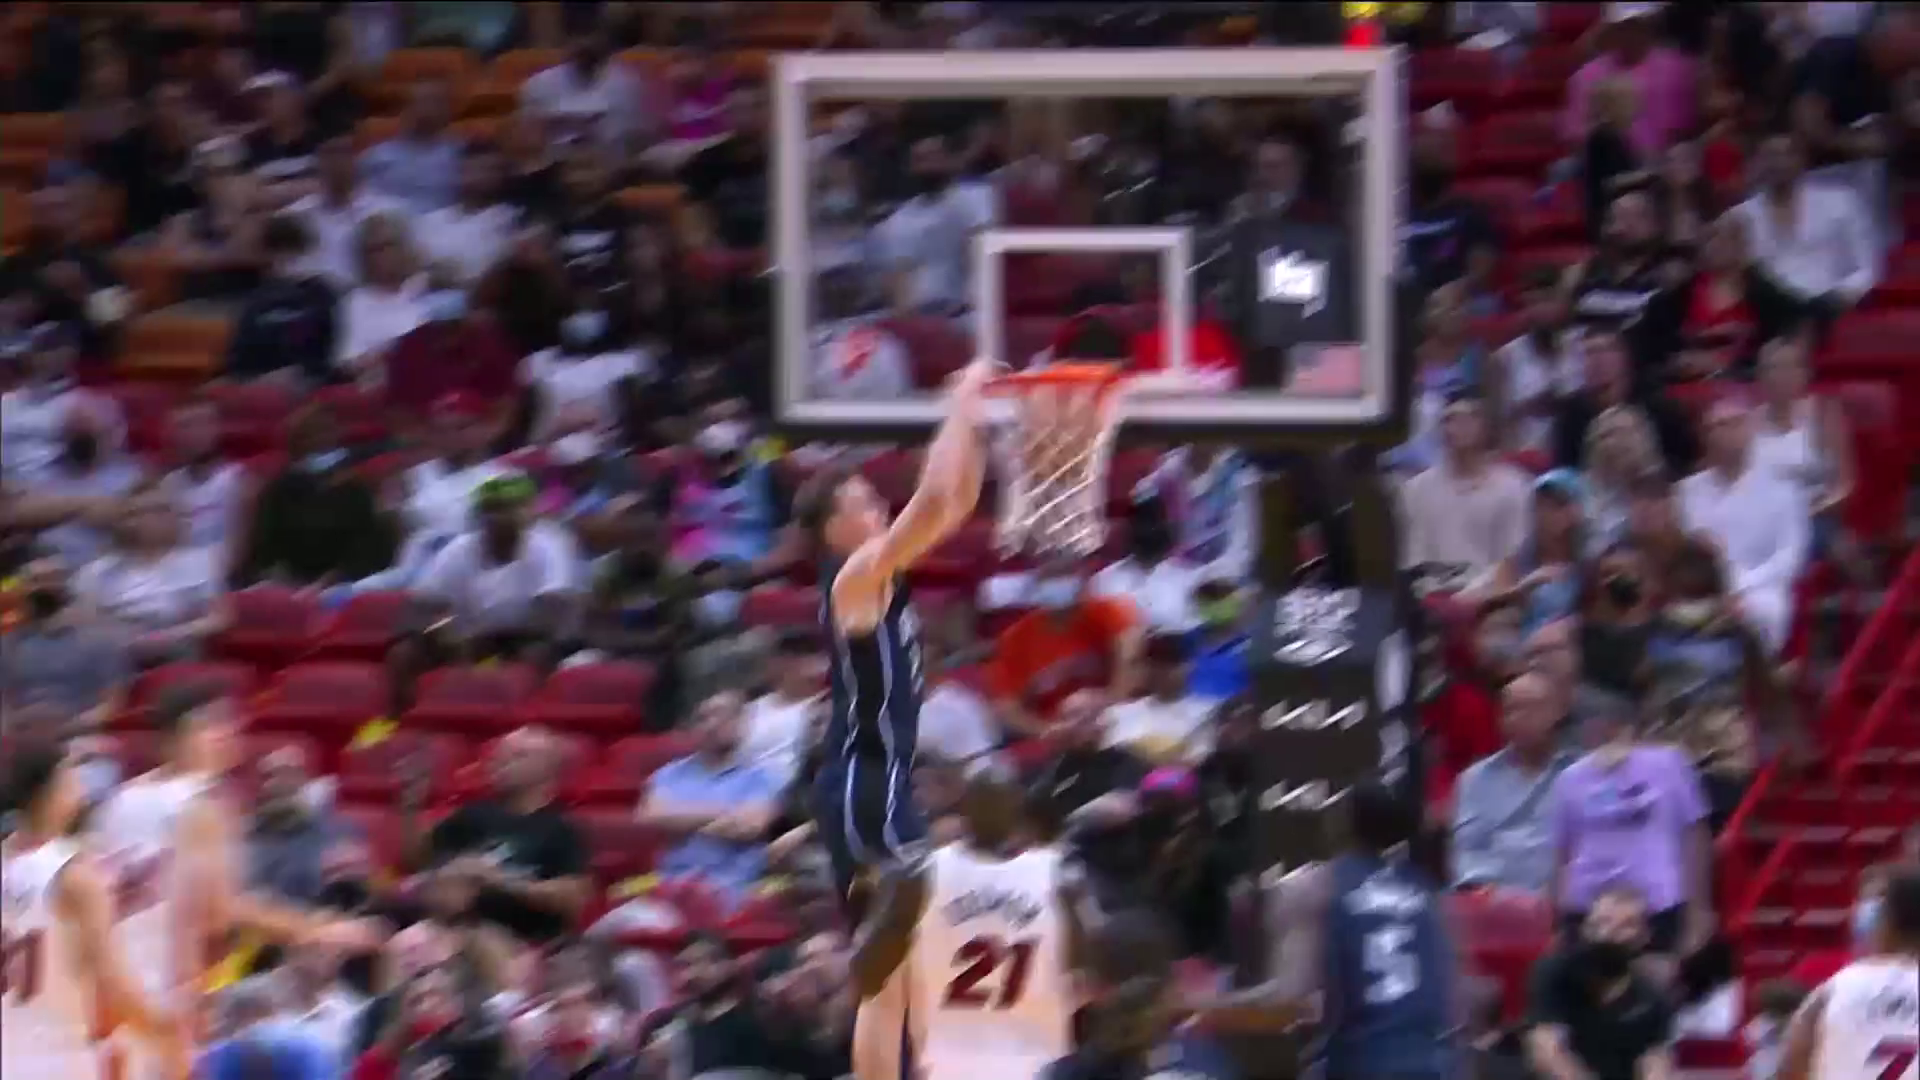 Franz Wagner's Two-Handed Jam